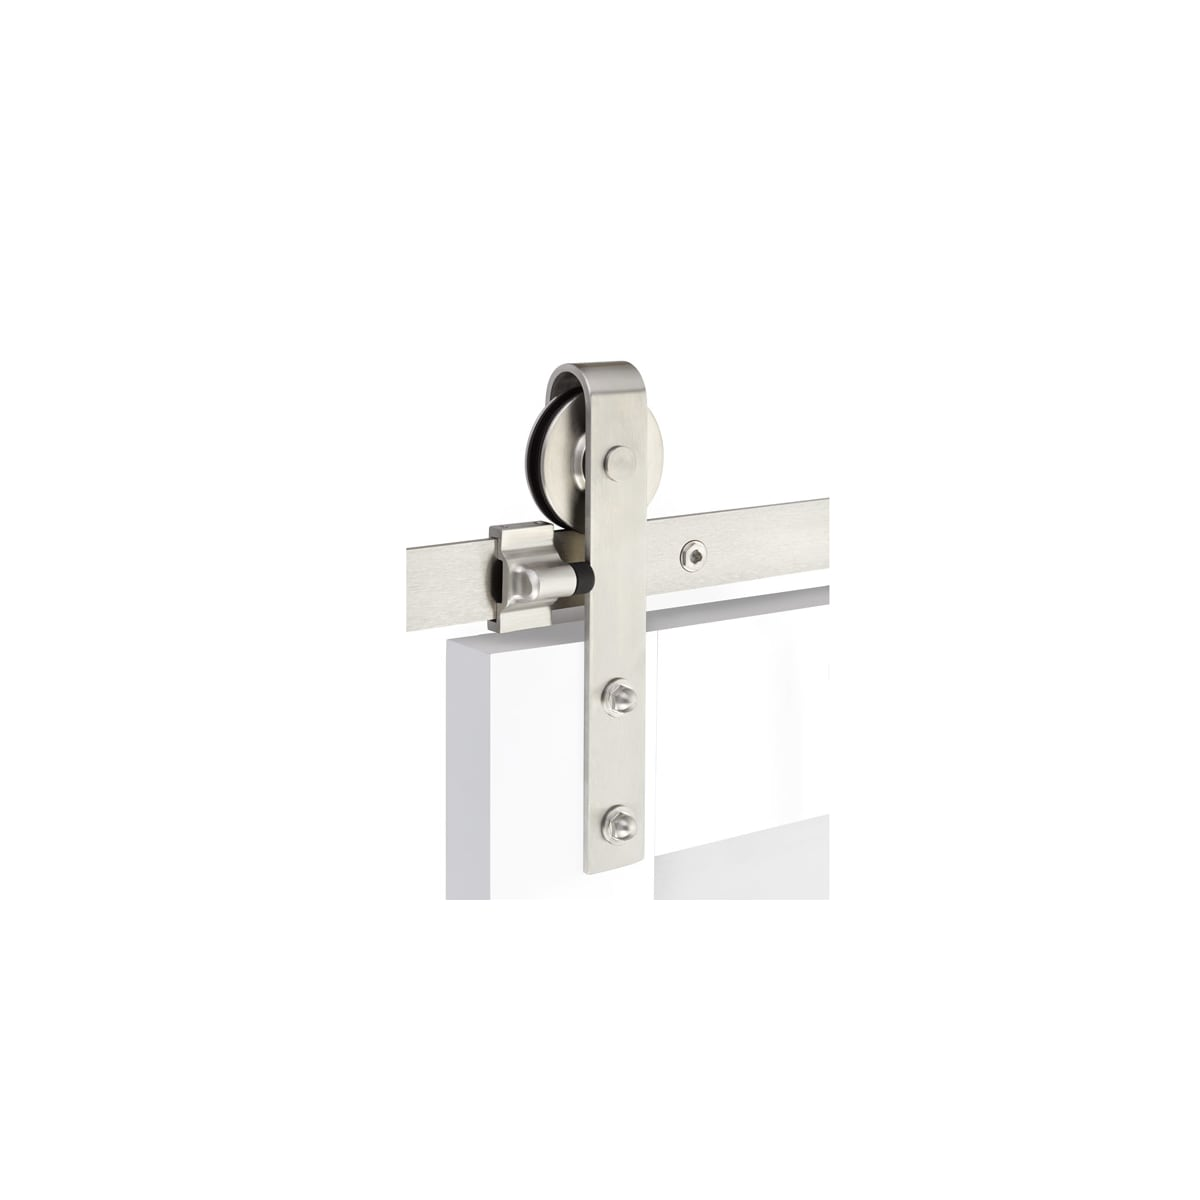 Emtek Classic 96 Inch Face Mount Barn Door Hardware Set - Includes Track, Hangers, and Matching Hardware